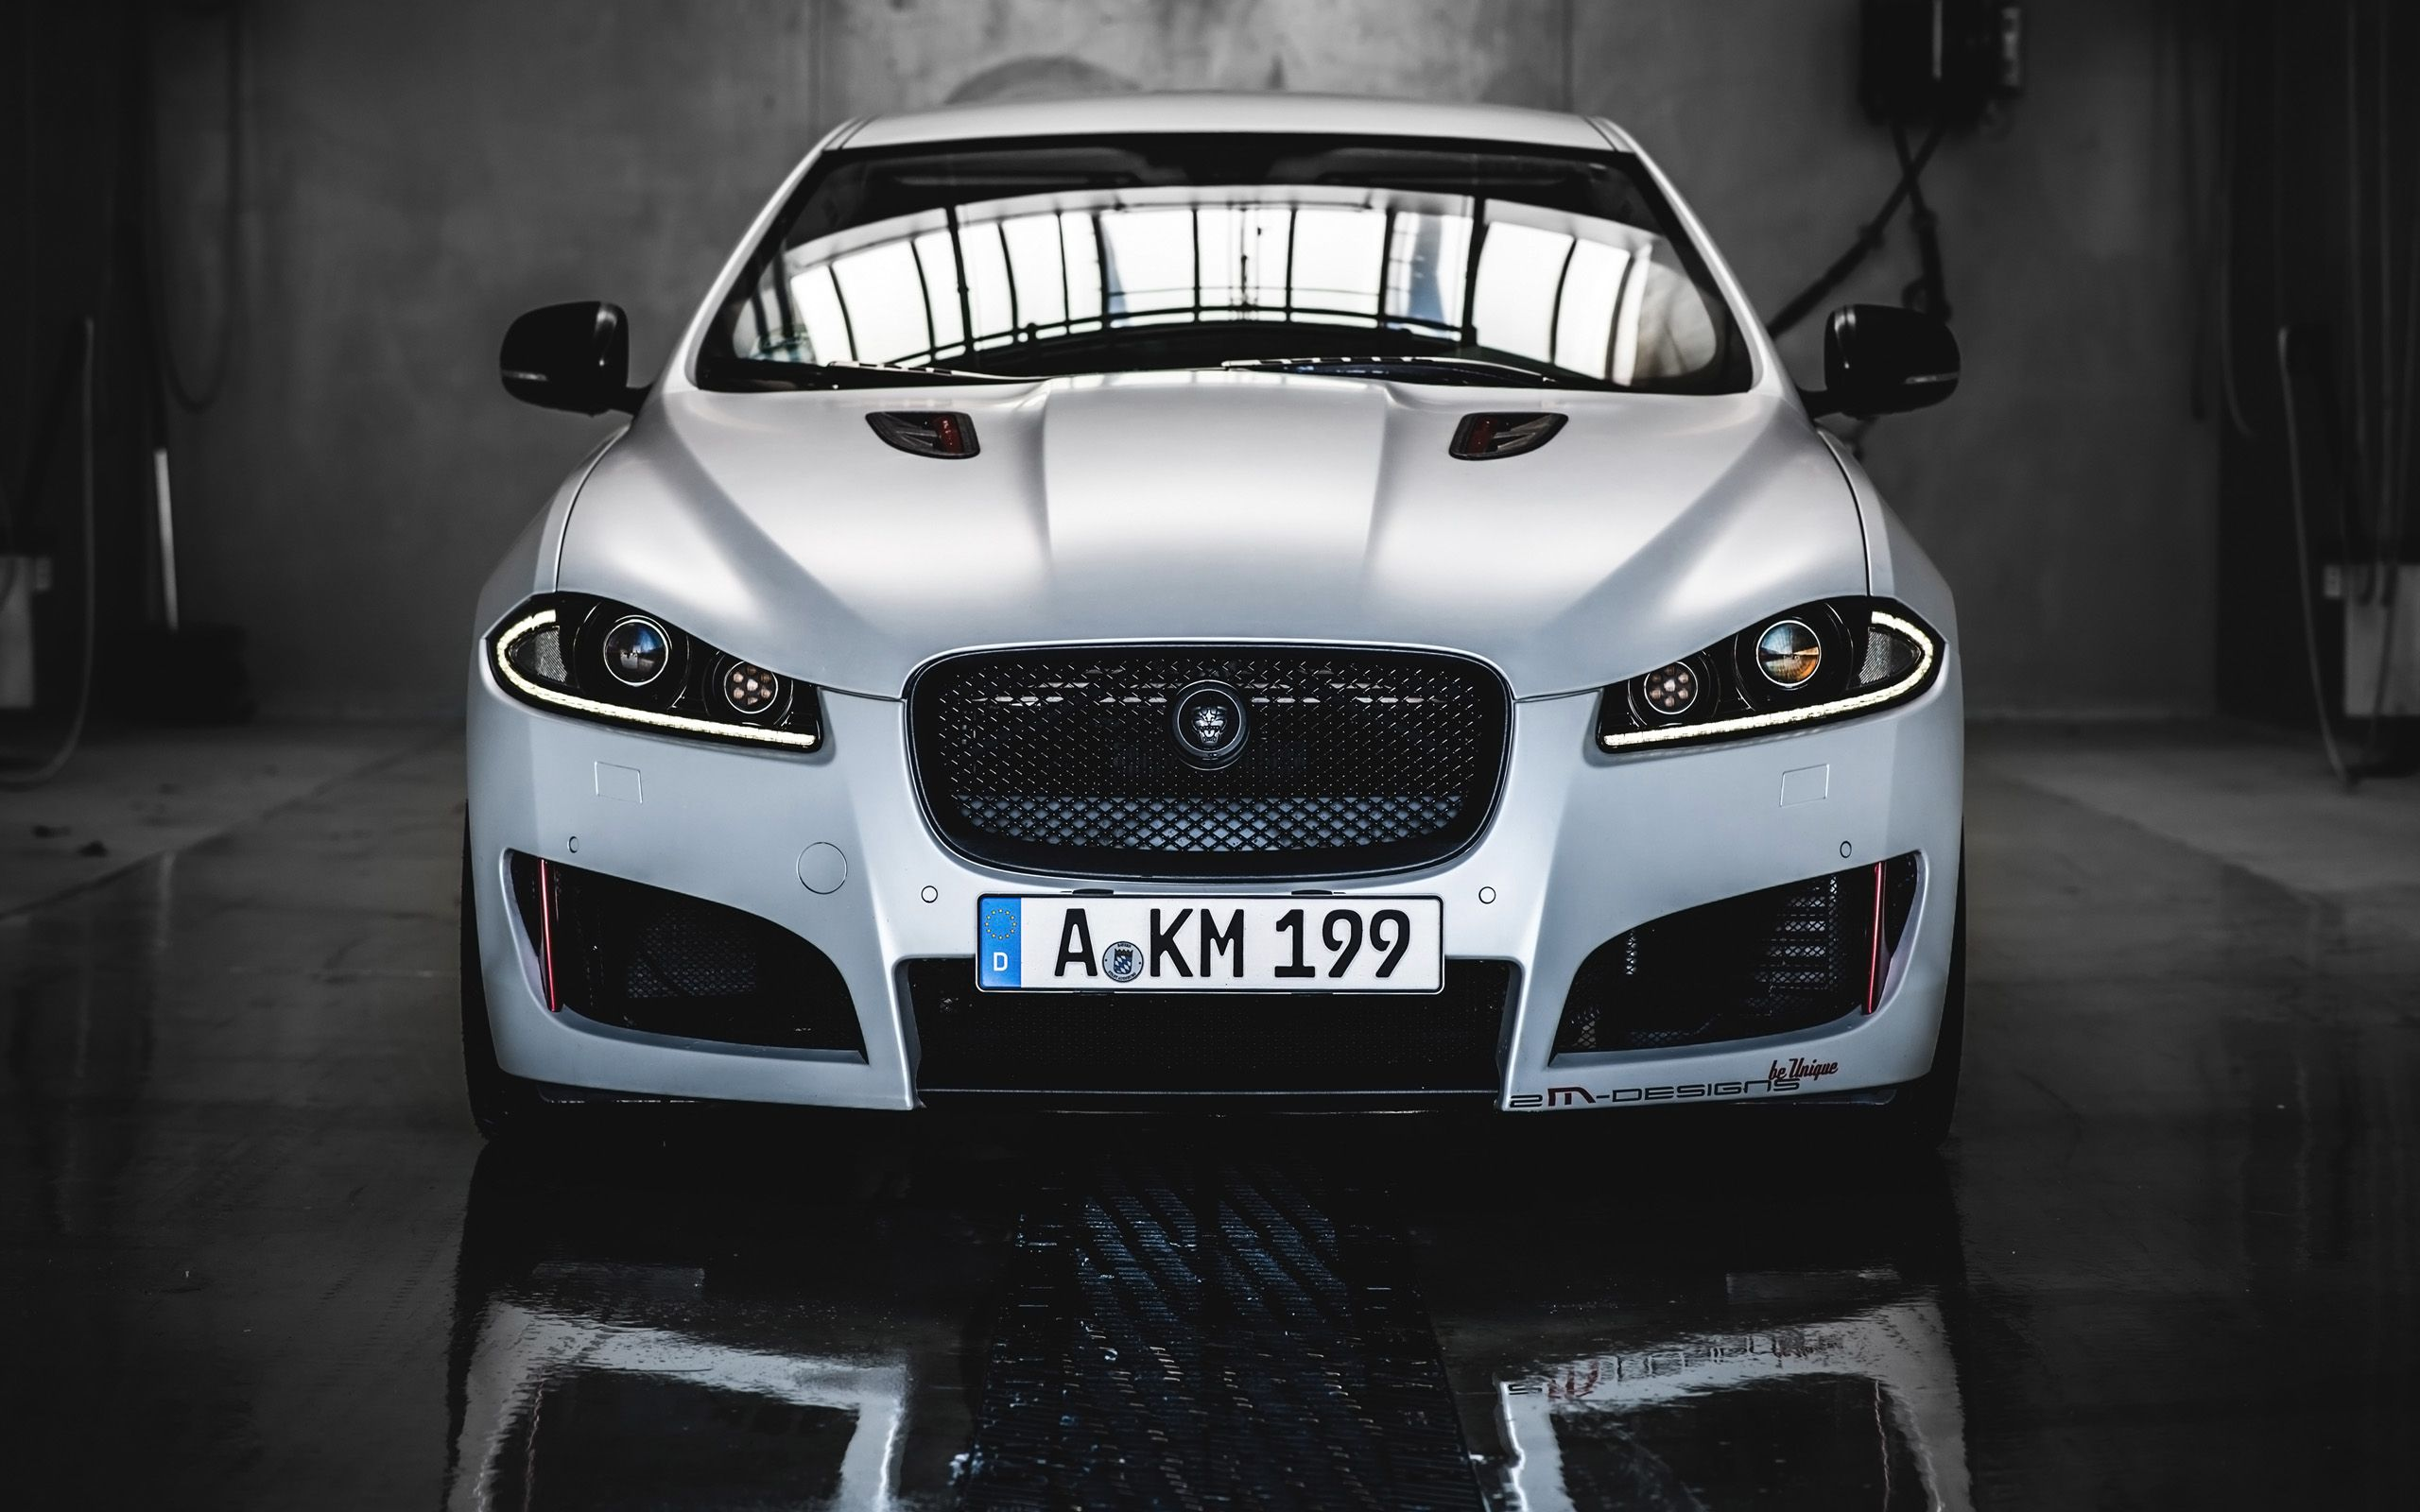 2013 jaguar xf by 2m designs custom cars pinterest 2013 jaguar jaguar xf and custom cars